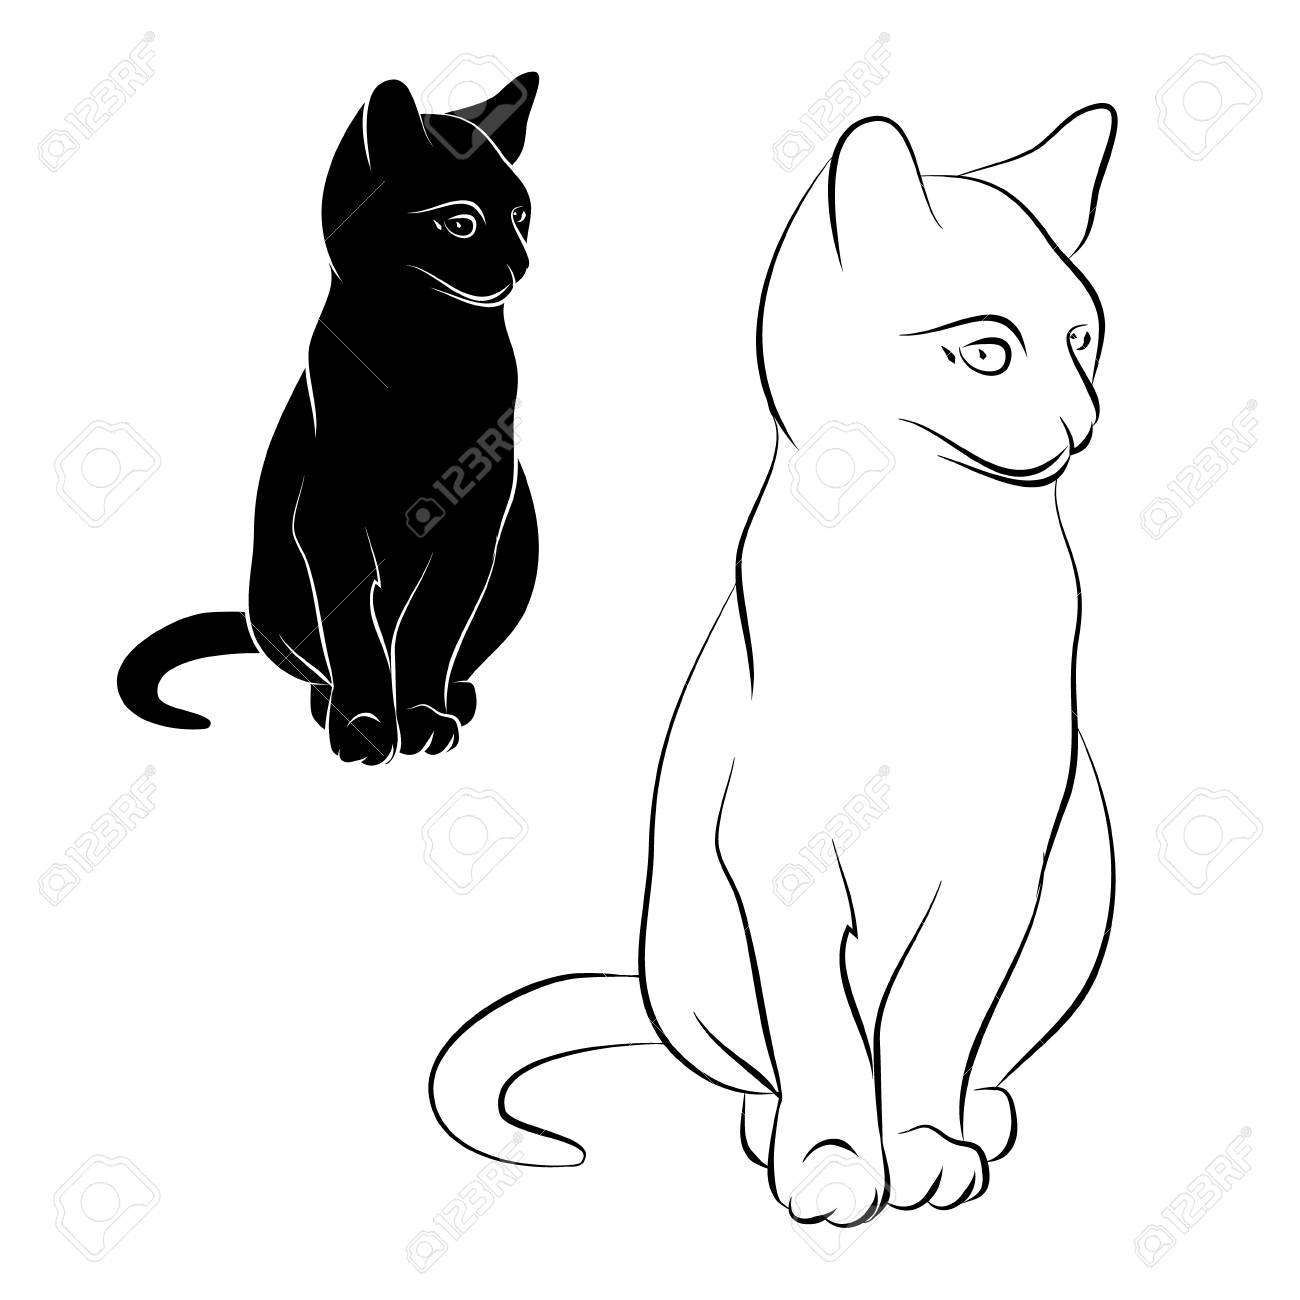 Cat Silhouette On A White Background The Outline Of A Cat Vector Royalty Free Cliparts Vectors And Stock Illustration Image 94071102